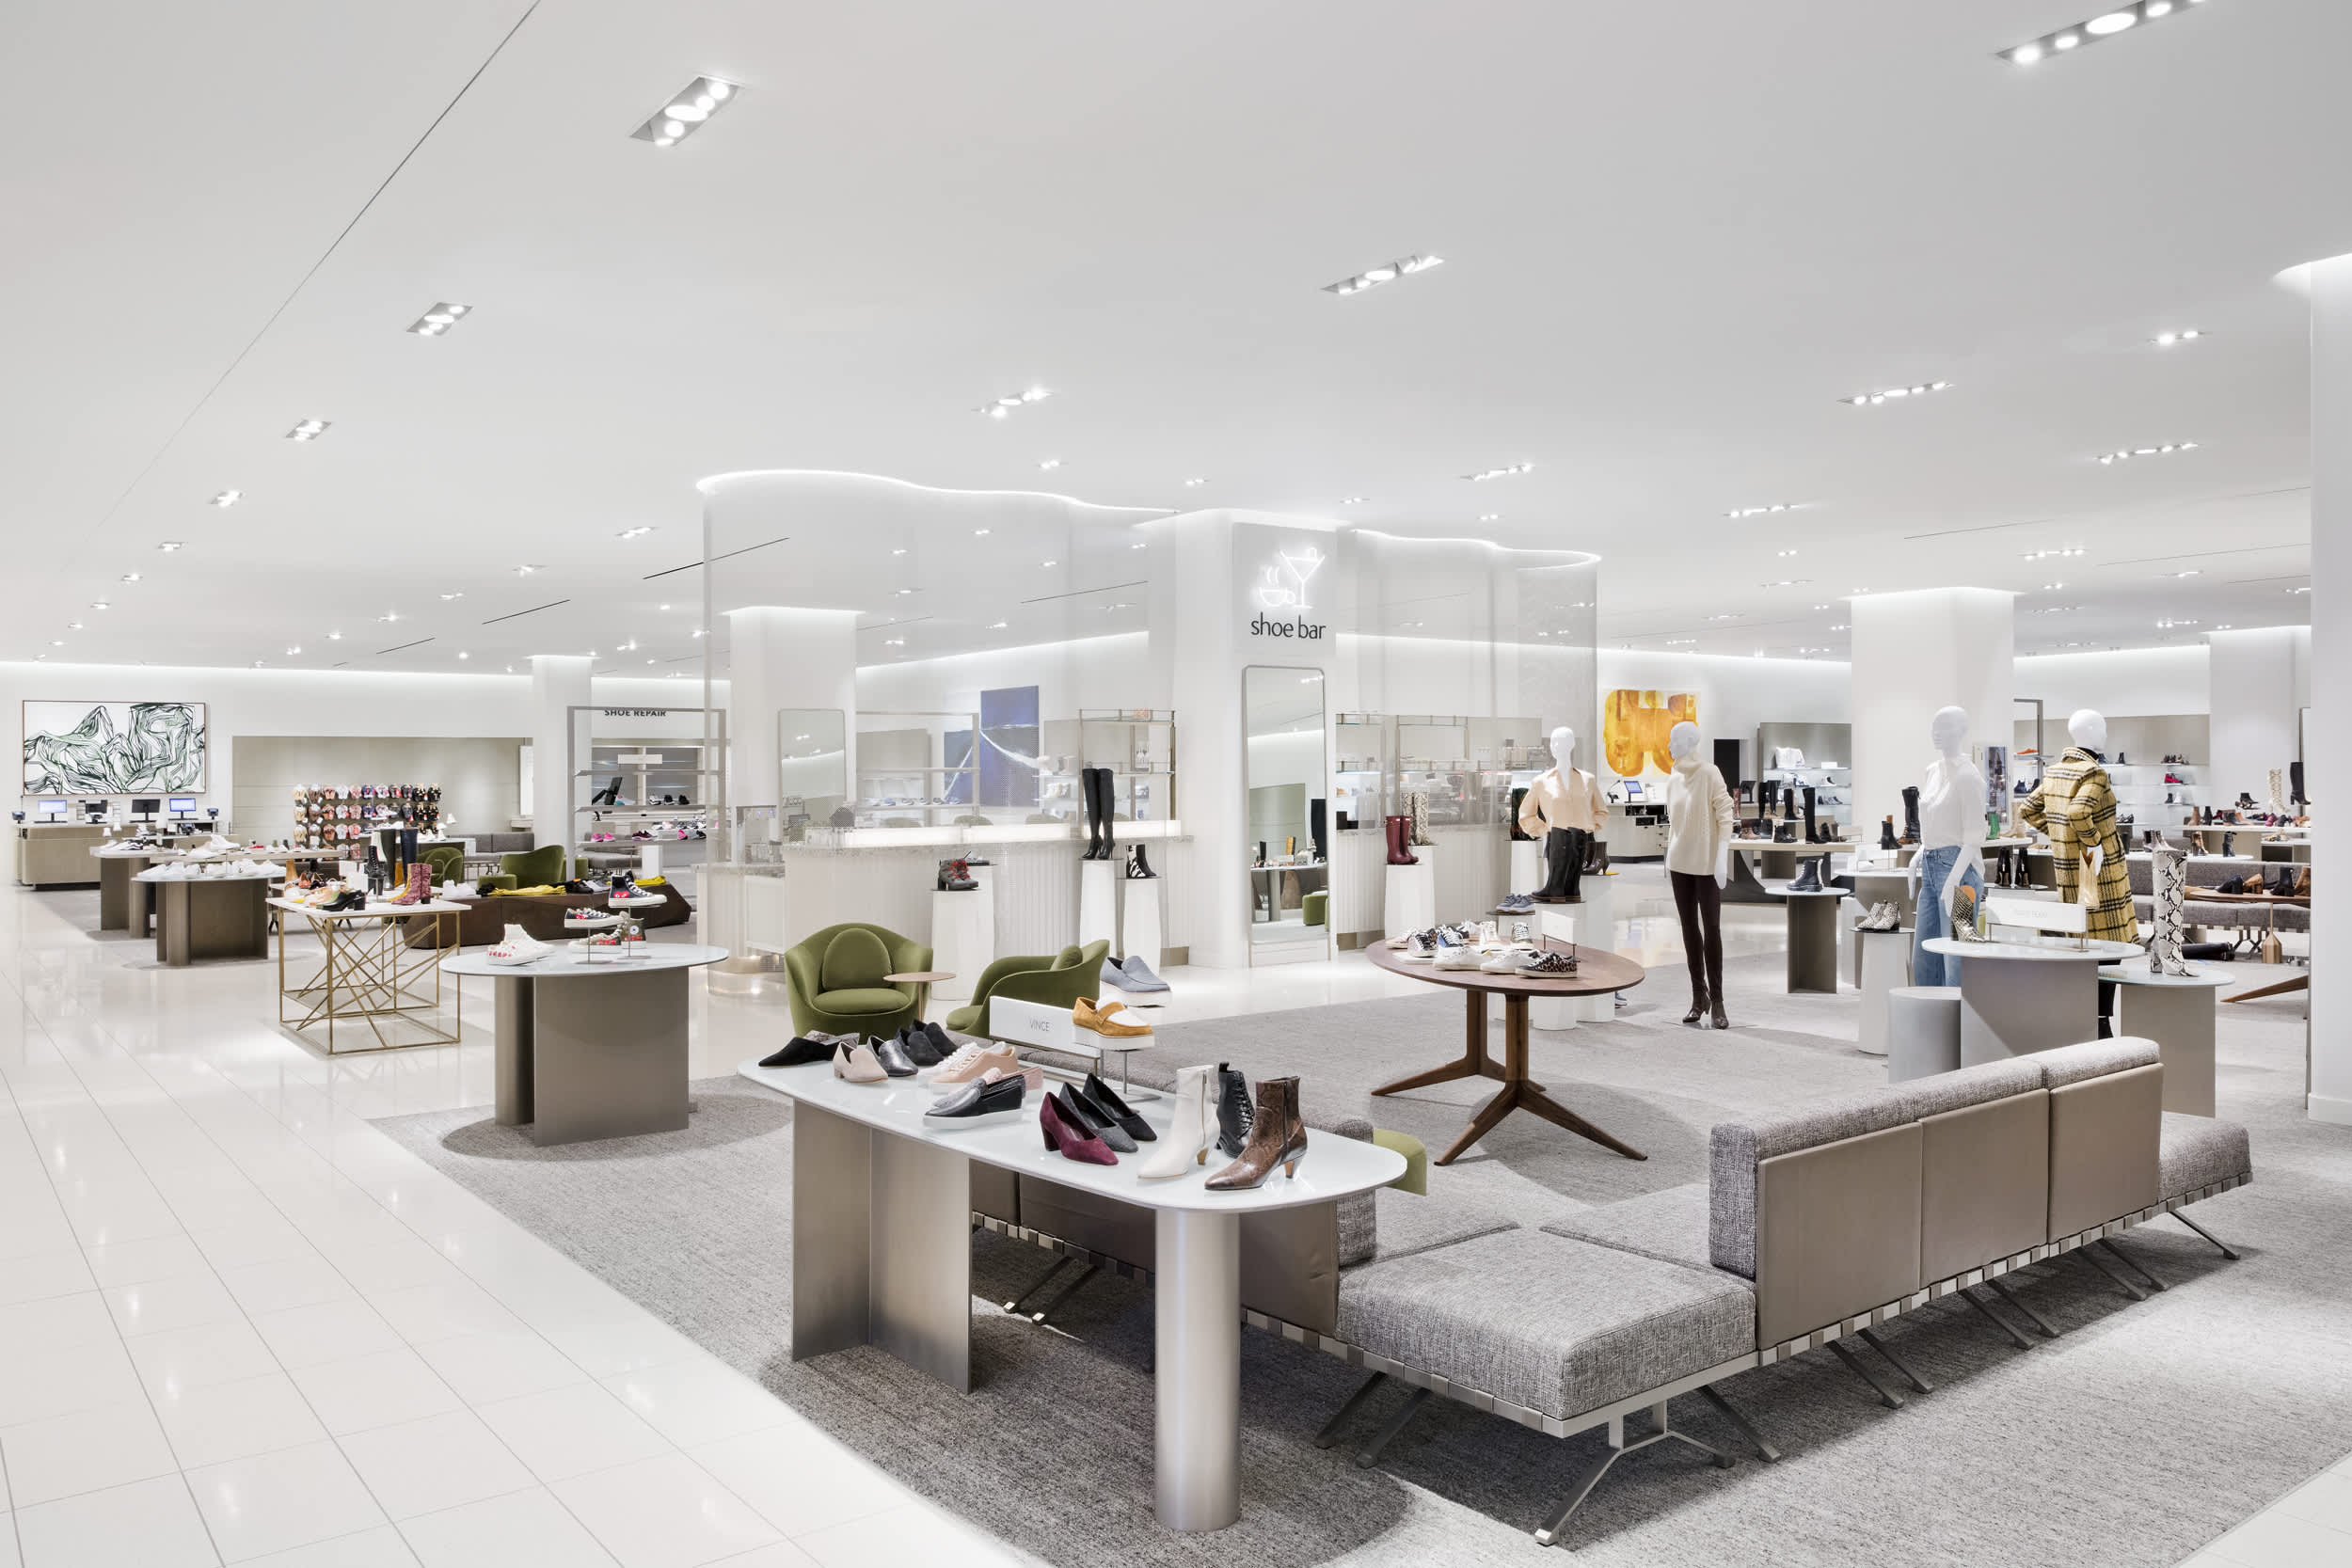 Nordstrom wants its new Manhattan store to be a place where women can discover new brands